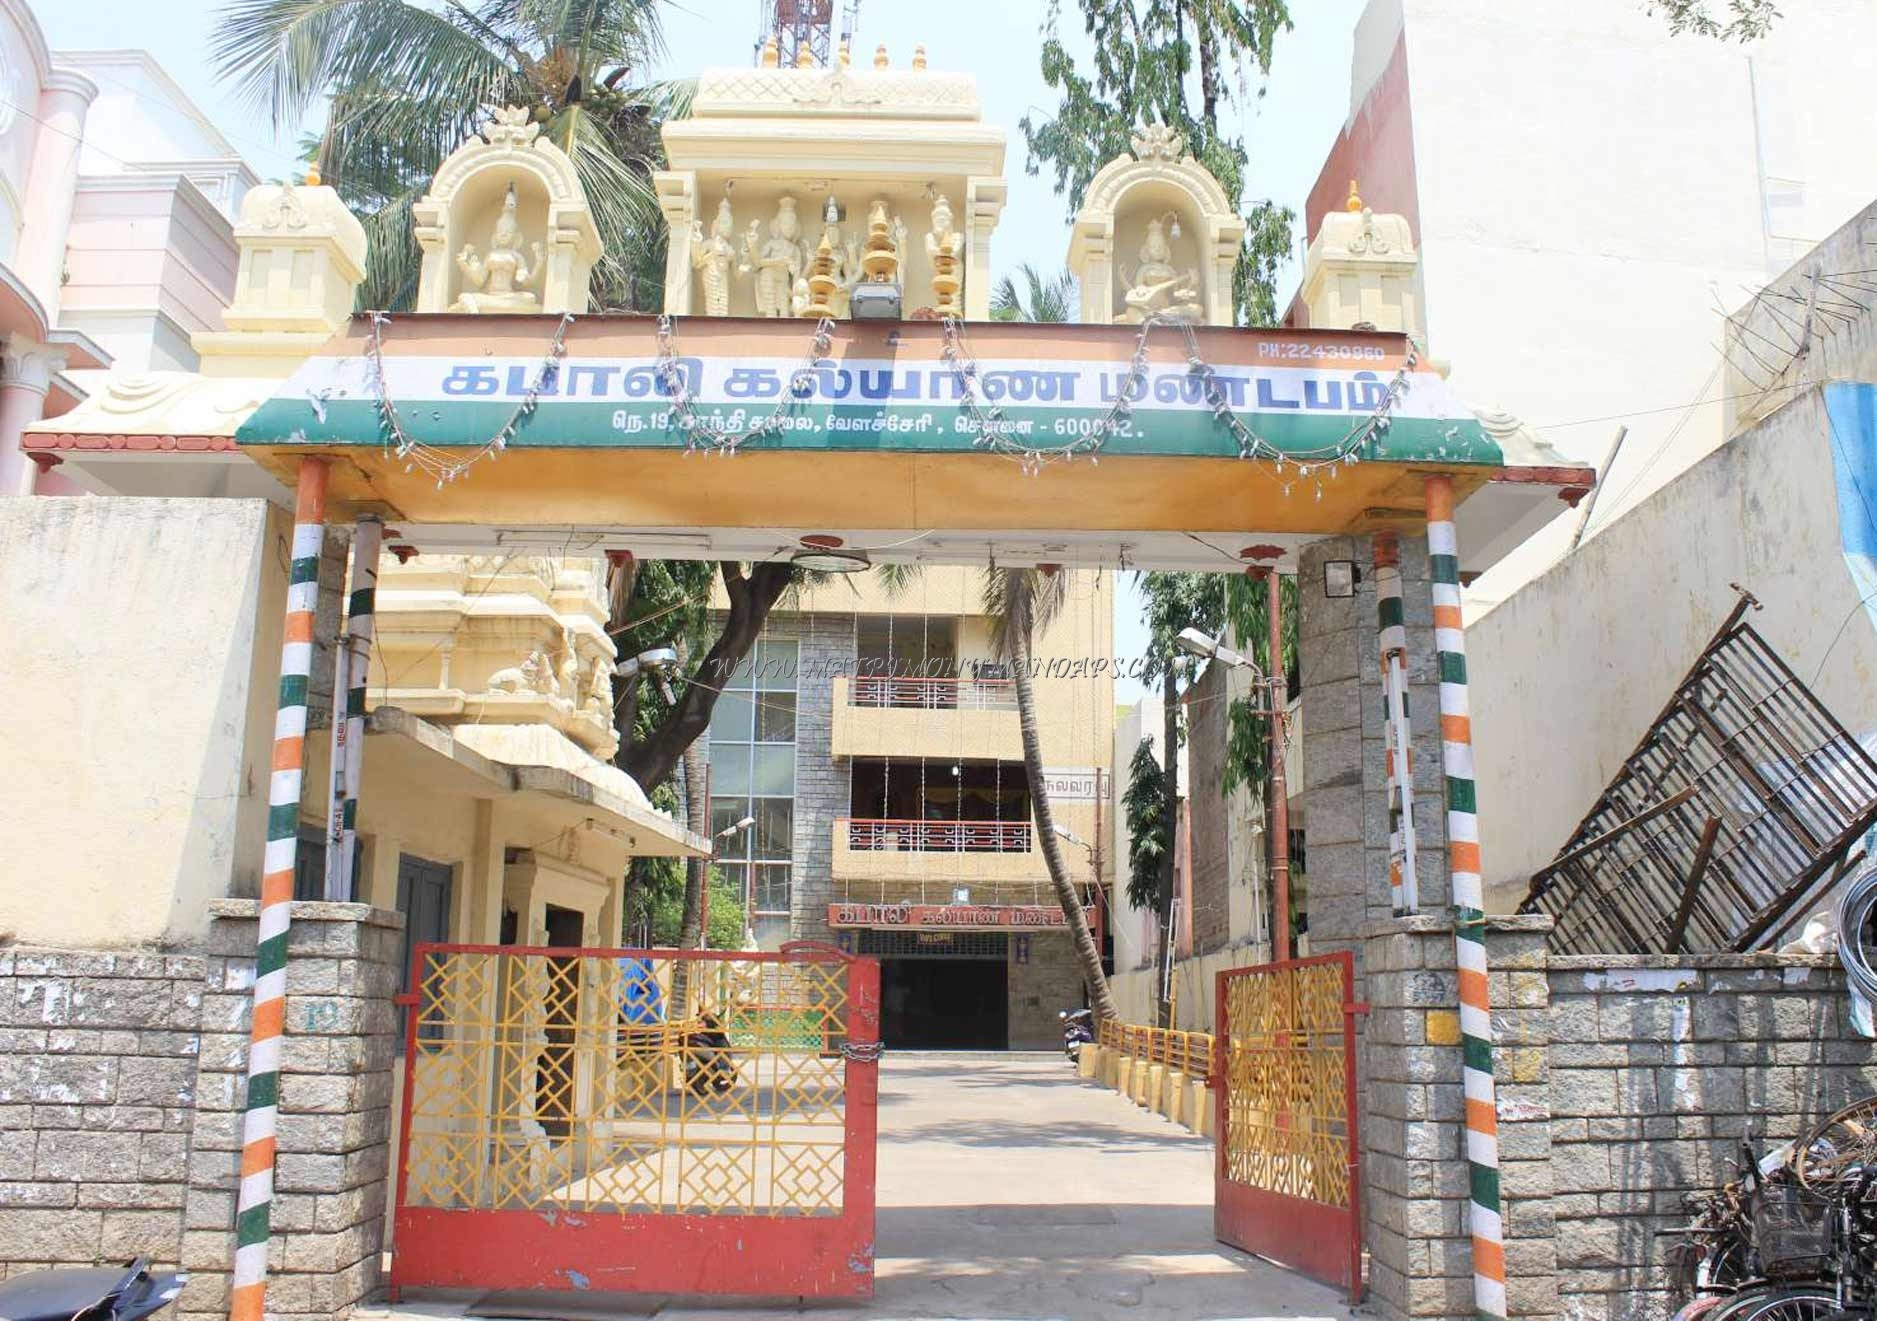 Find the availability of the Kabali Kalyana Mandapam in Velachery, Chennai and avail special offers